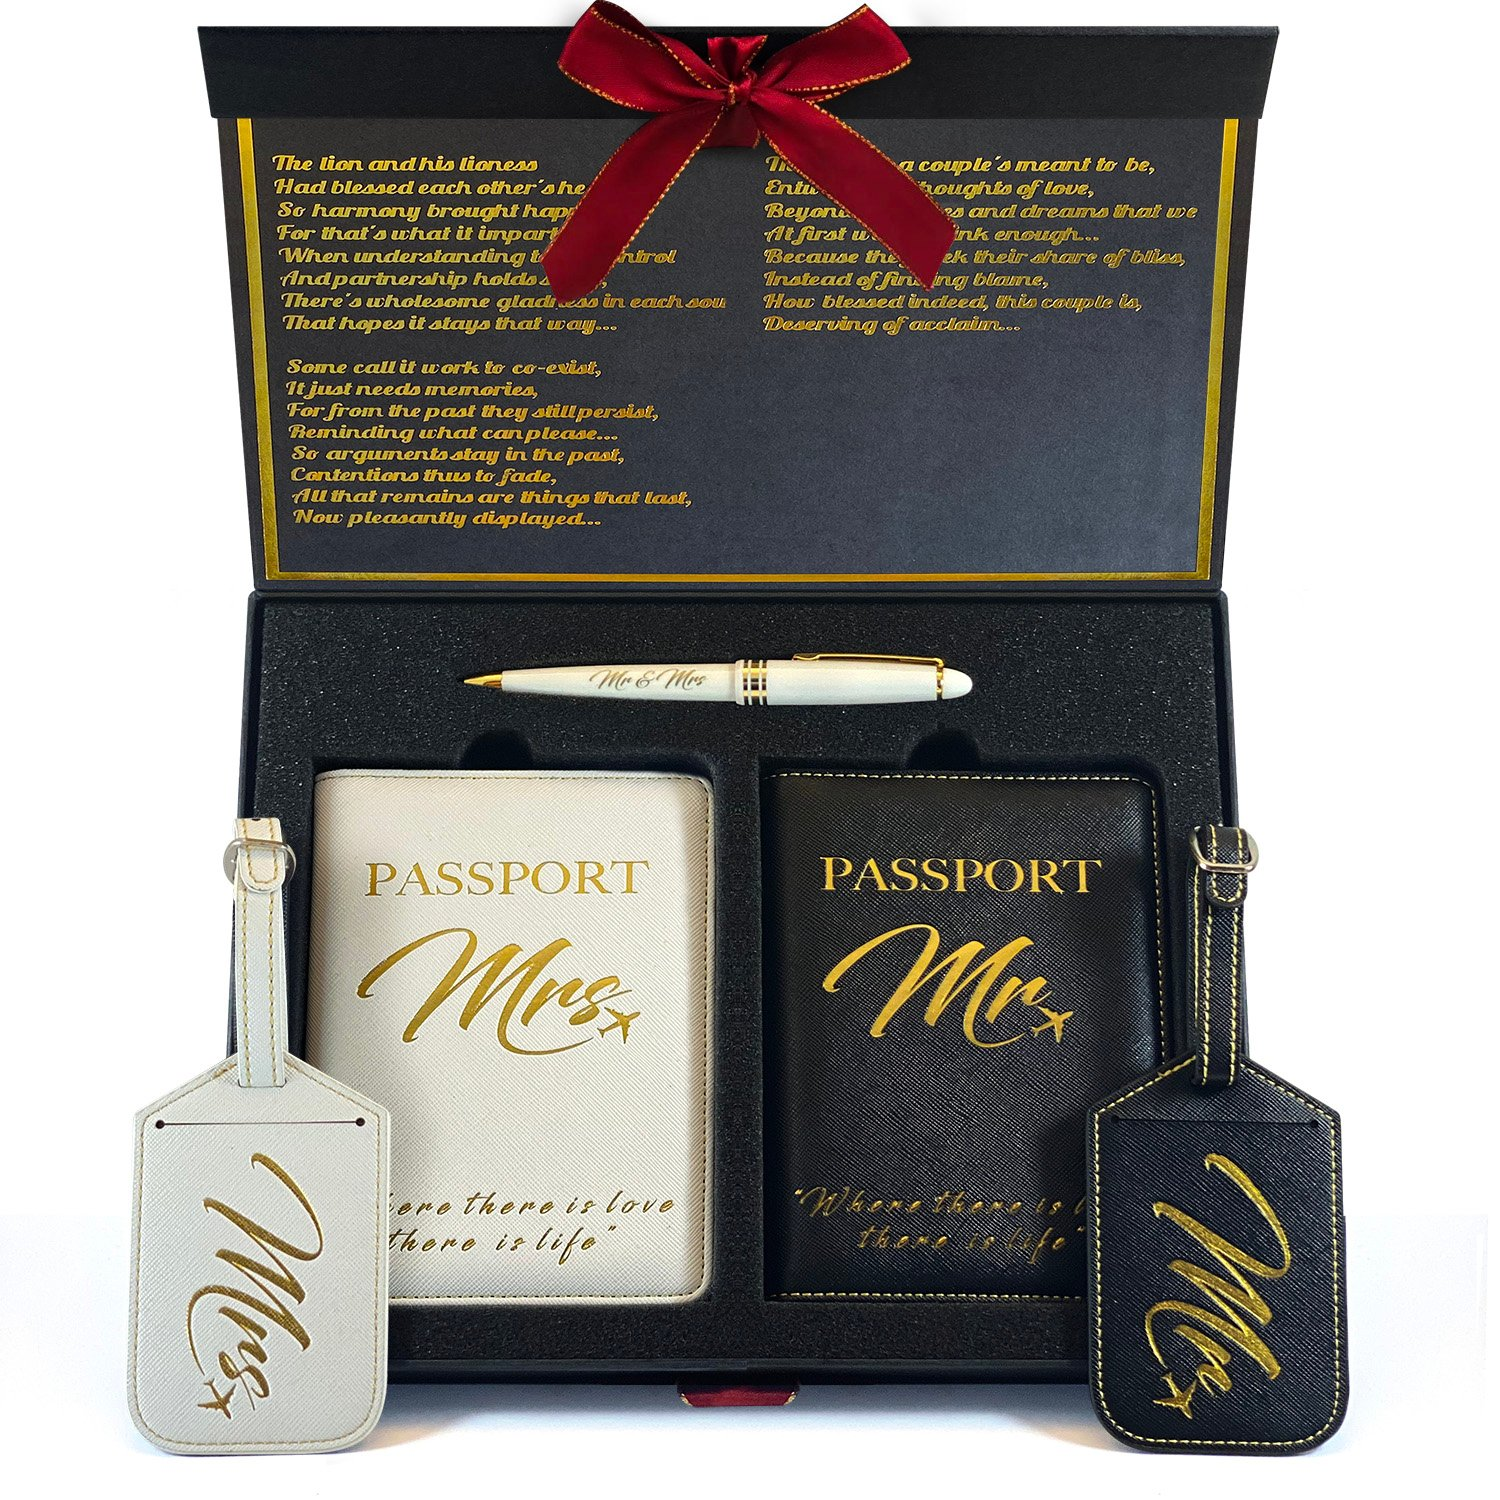 gifts-for-couples-passport-holders